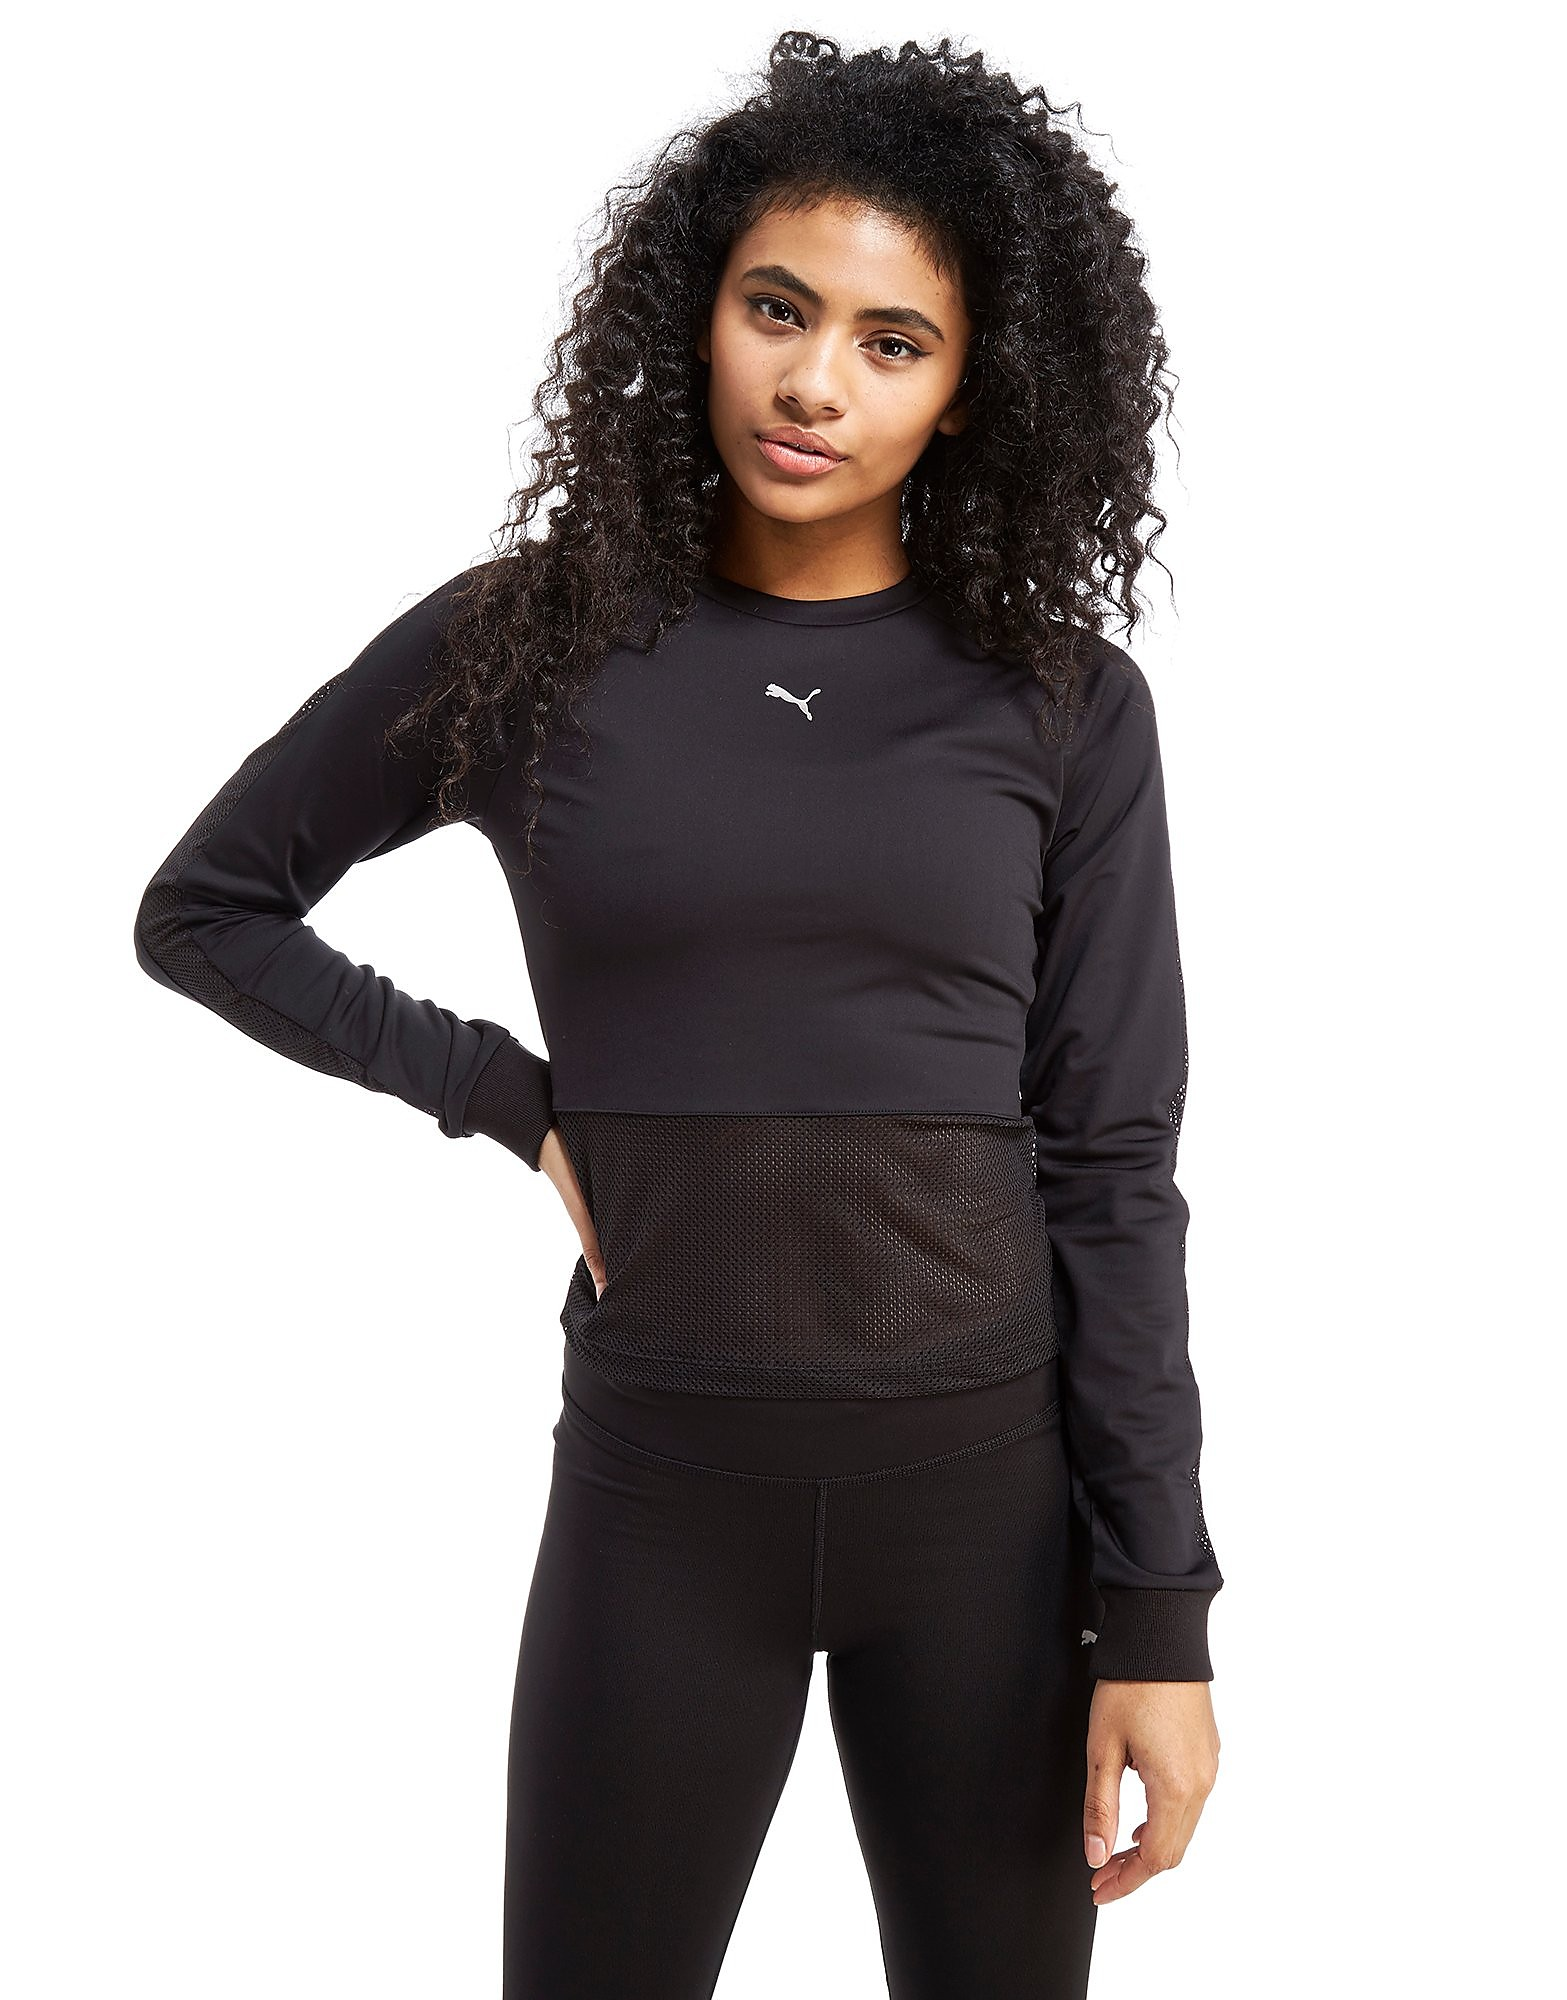 PUMA En Pointe Long Sleeve Top